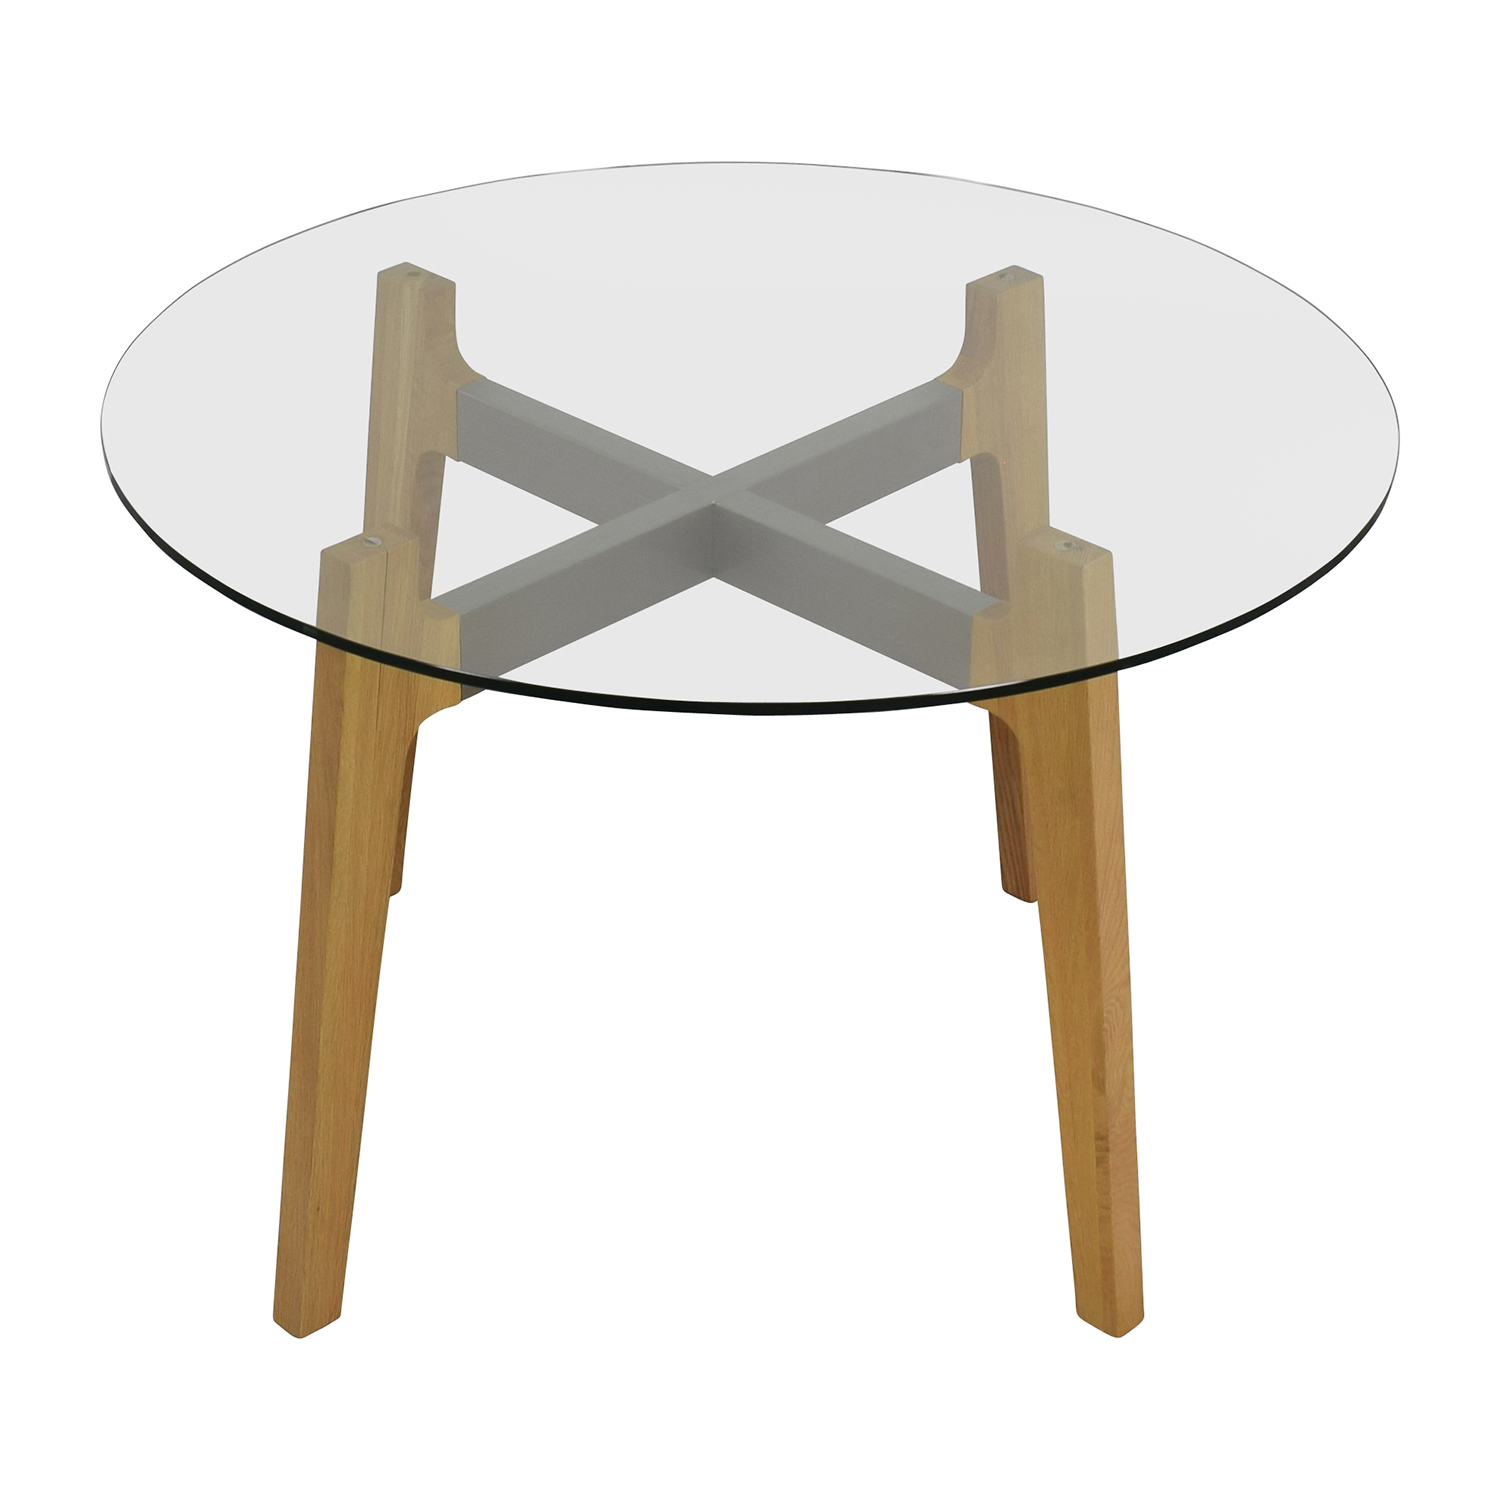 buy Crate & Barrel Mid-Century Glass Table Crate & Barrel Dinner Tables